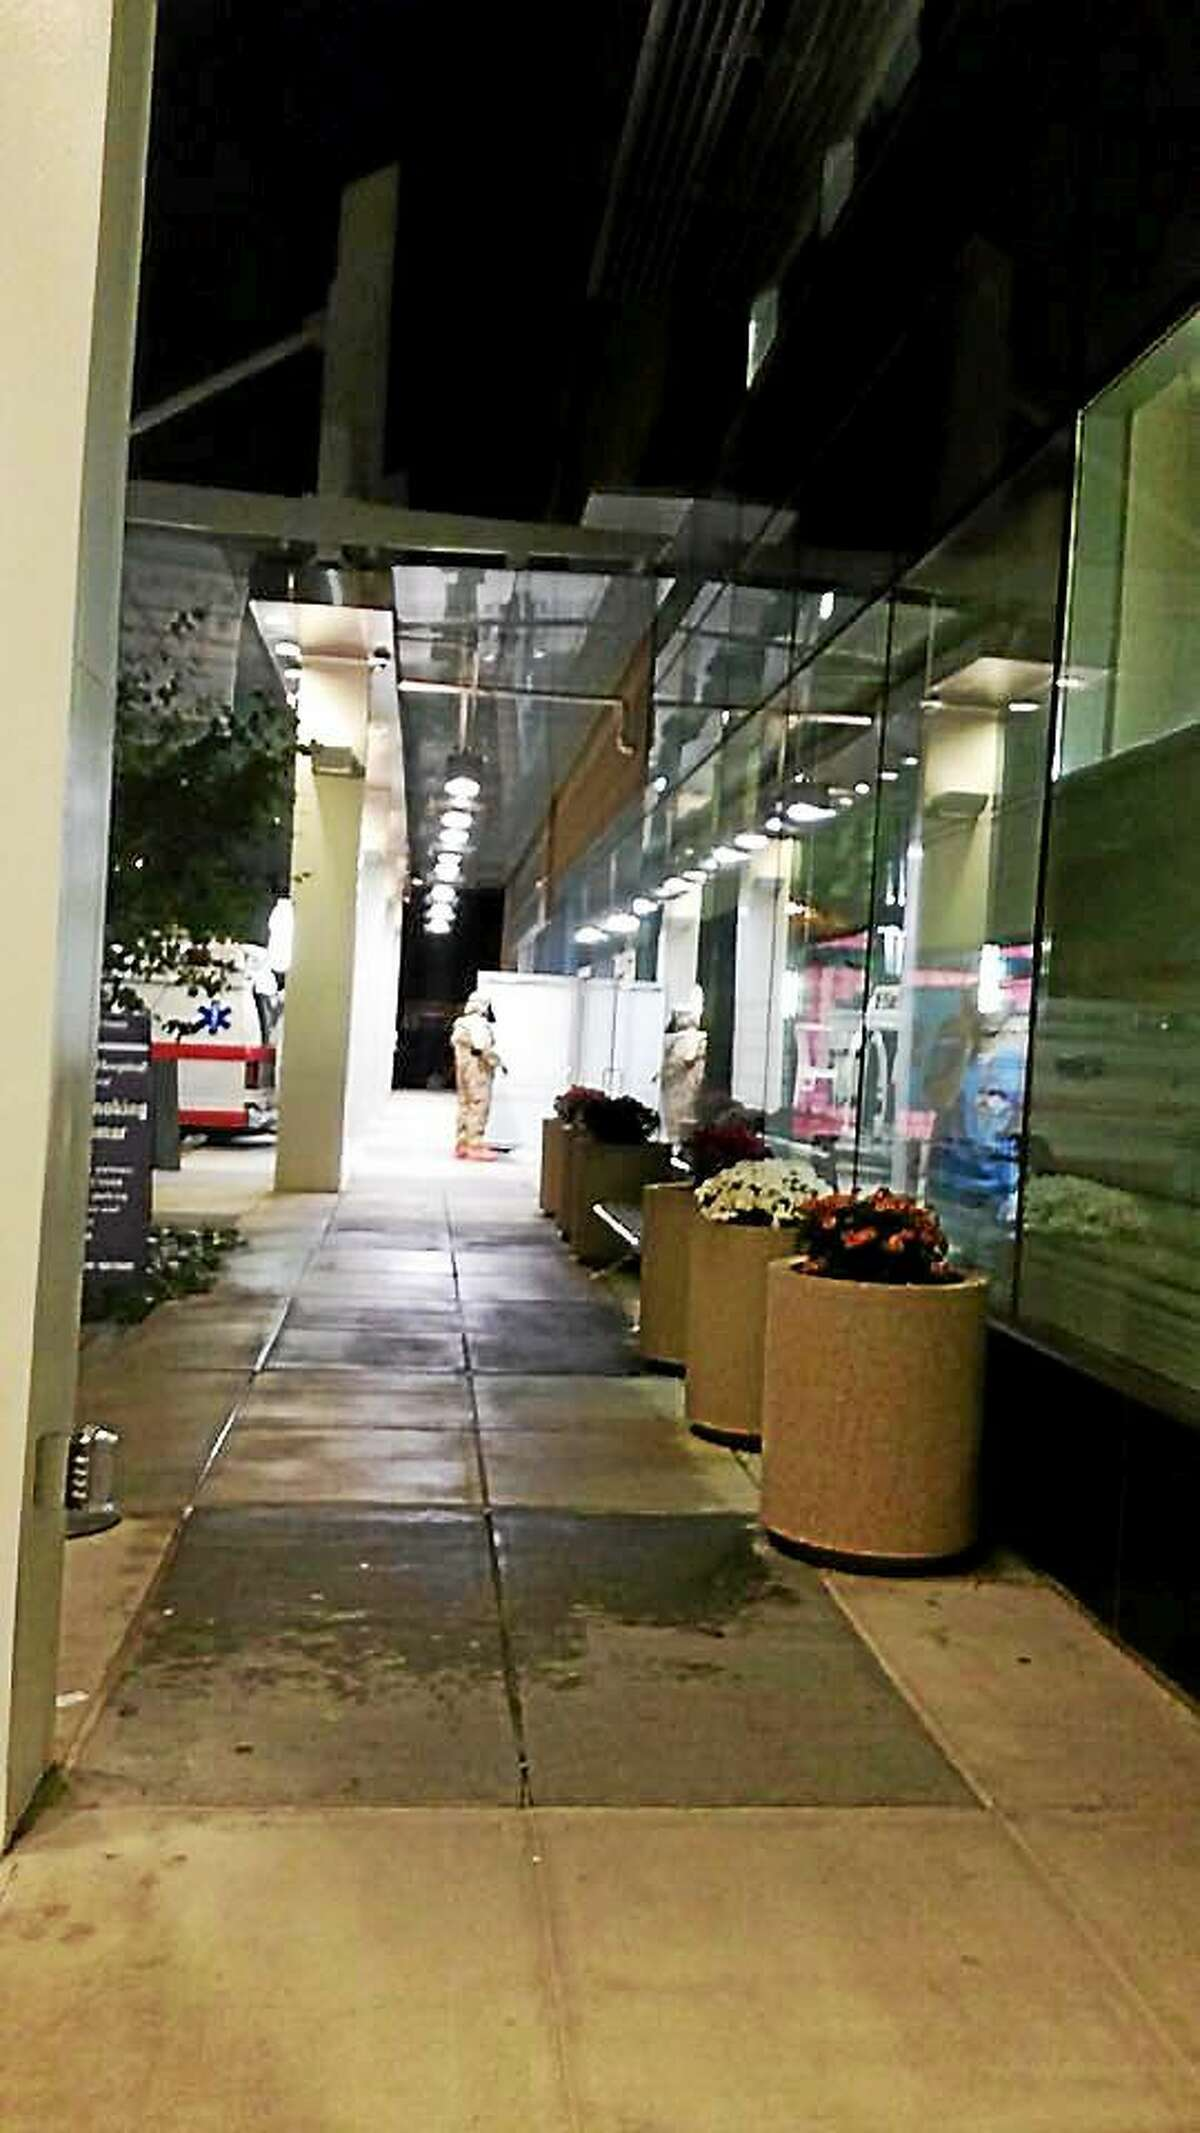 A worker in protective gear can be seen outside Yale-New Haven Hospital Wednesday night. Hospital officials confirmed Thursday a patient with Ebola-like symptoms was being treated there. Photo from Amy Giannotti